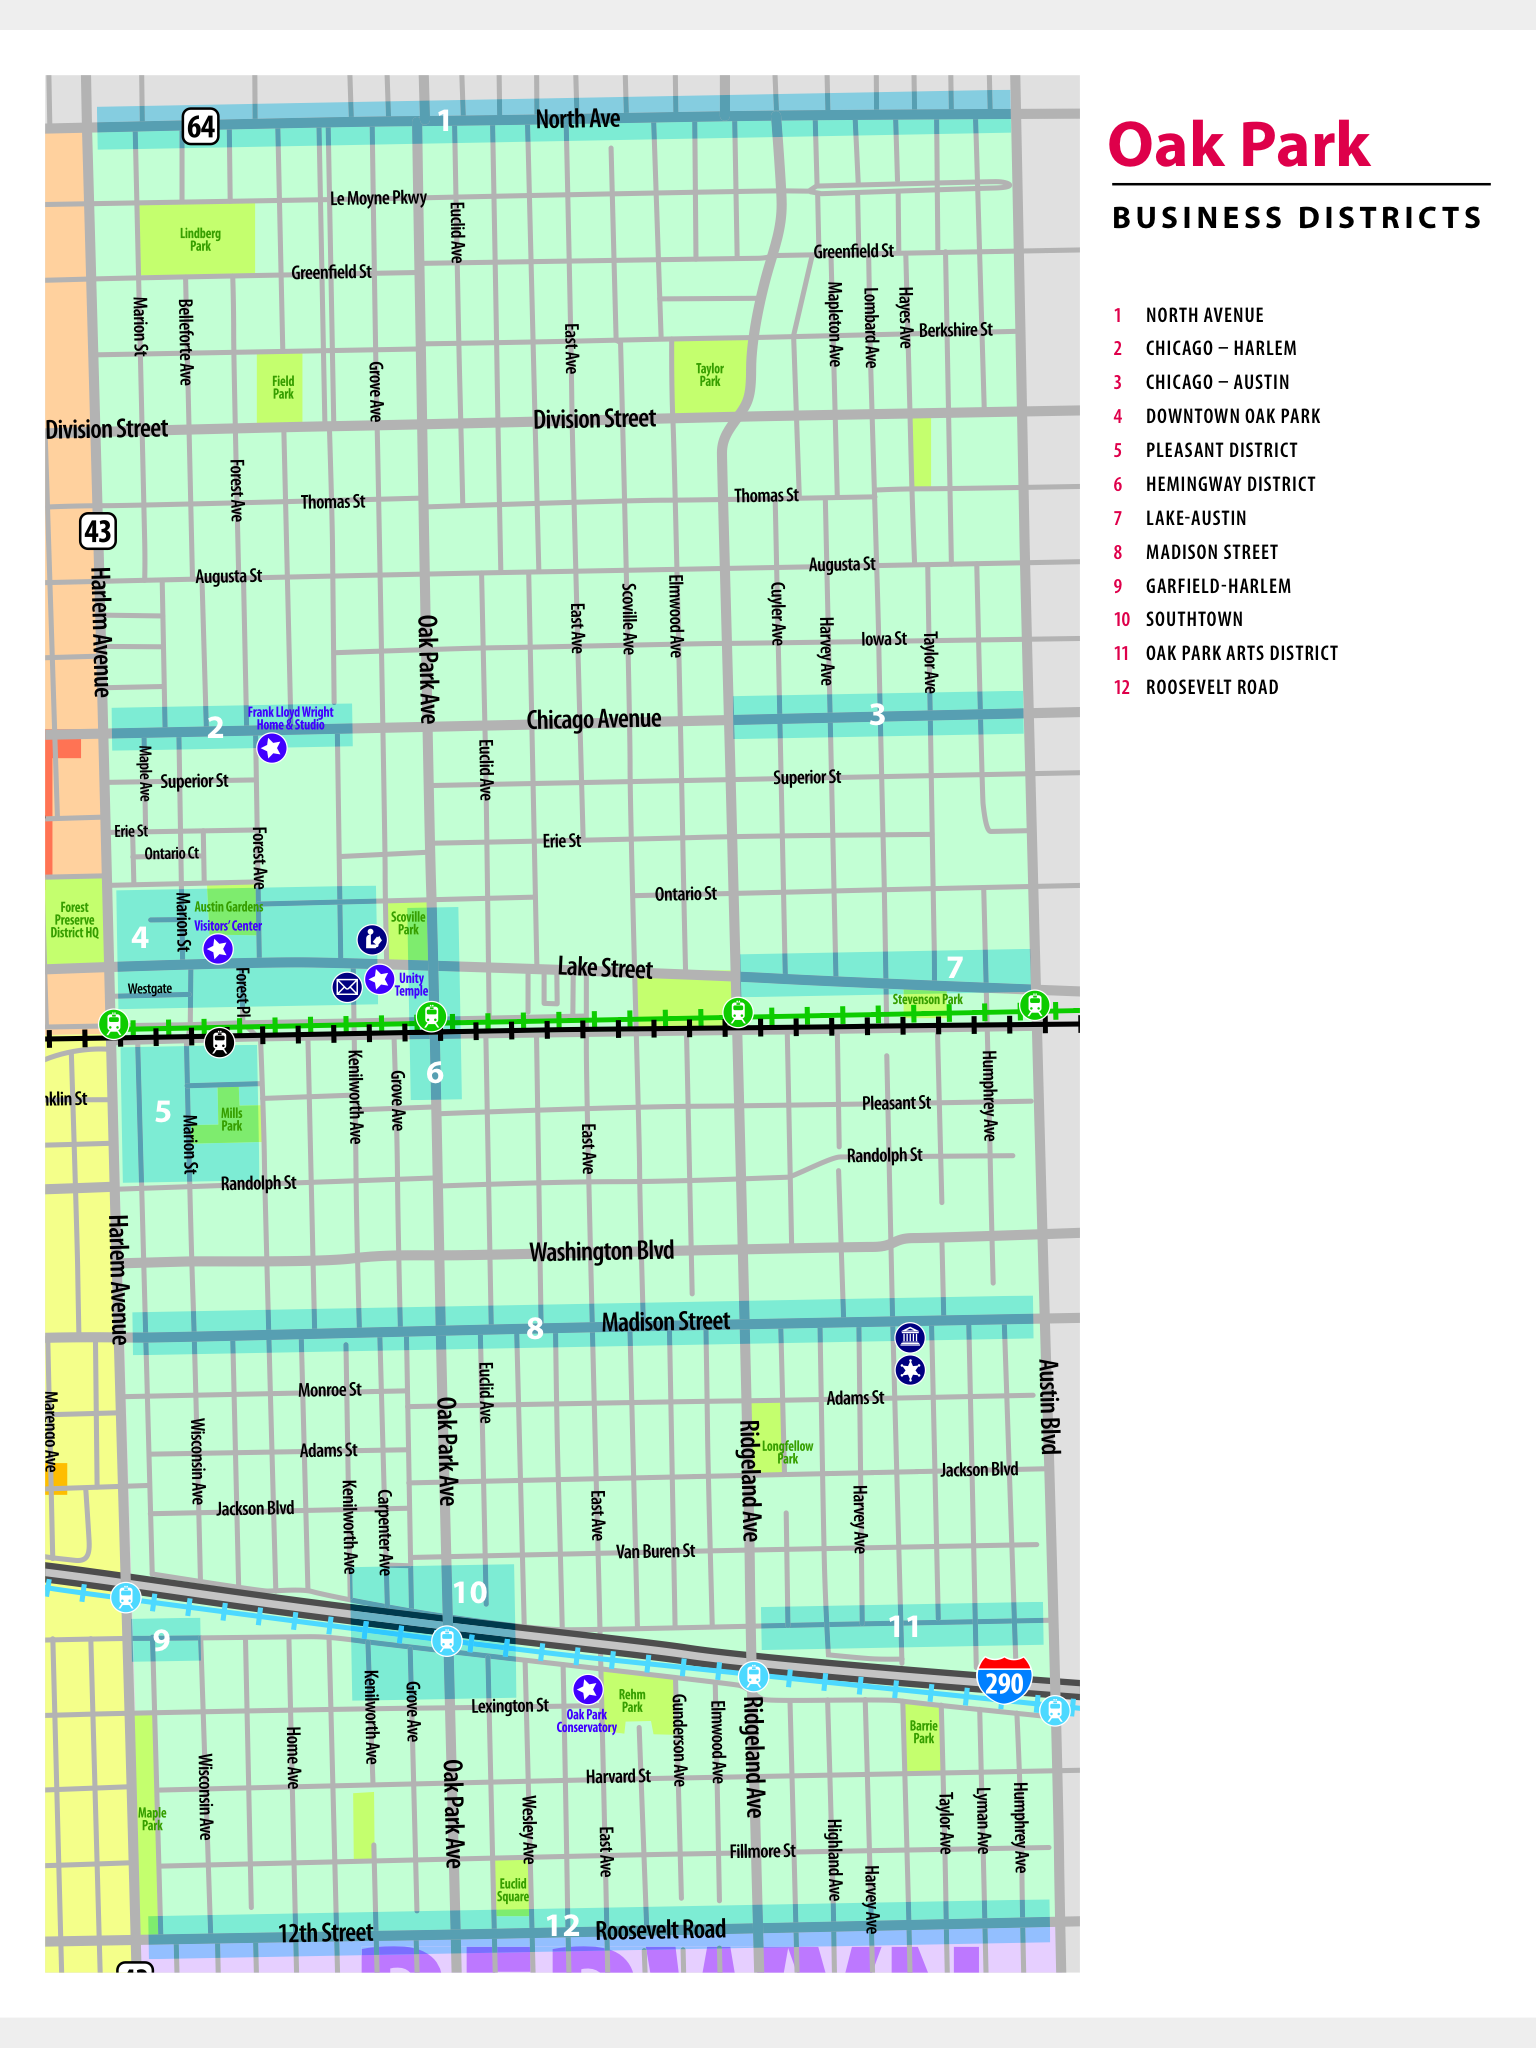 Oak-Park-Business-Districts-Map.jpg